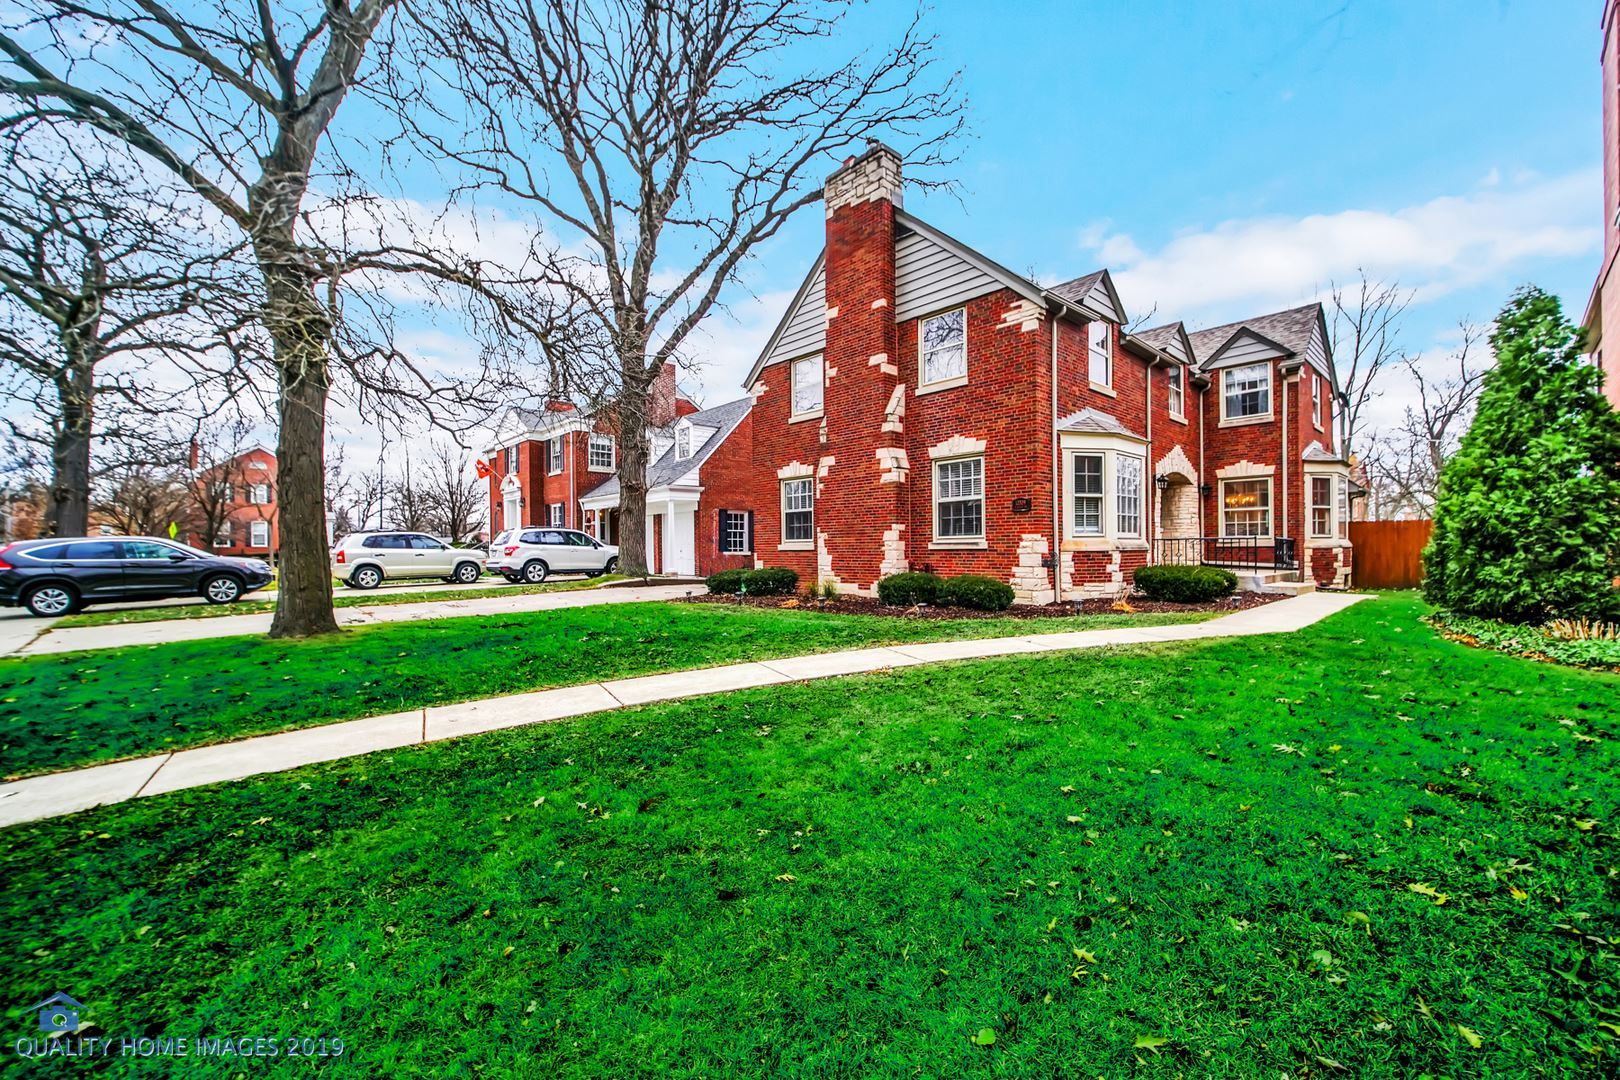 10309 S Seeley Avenue, Chicago, IL 60643 - #: 10756262